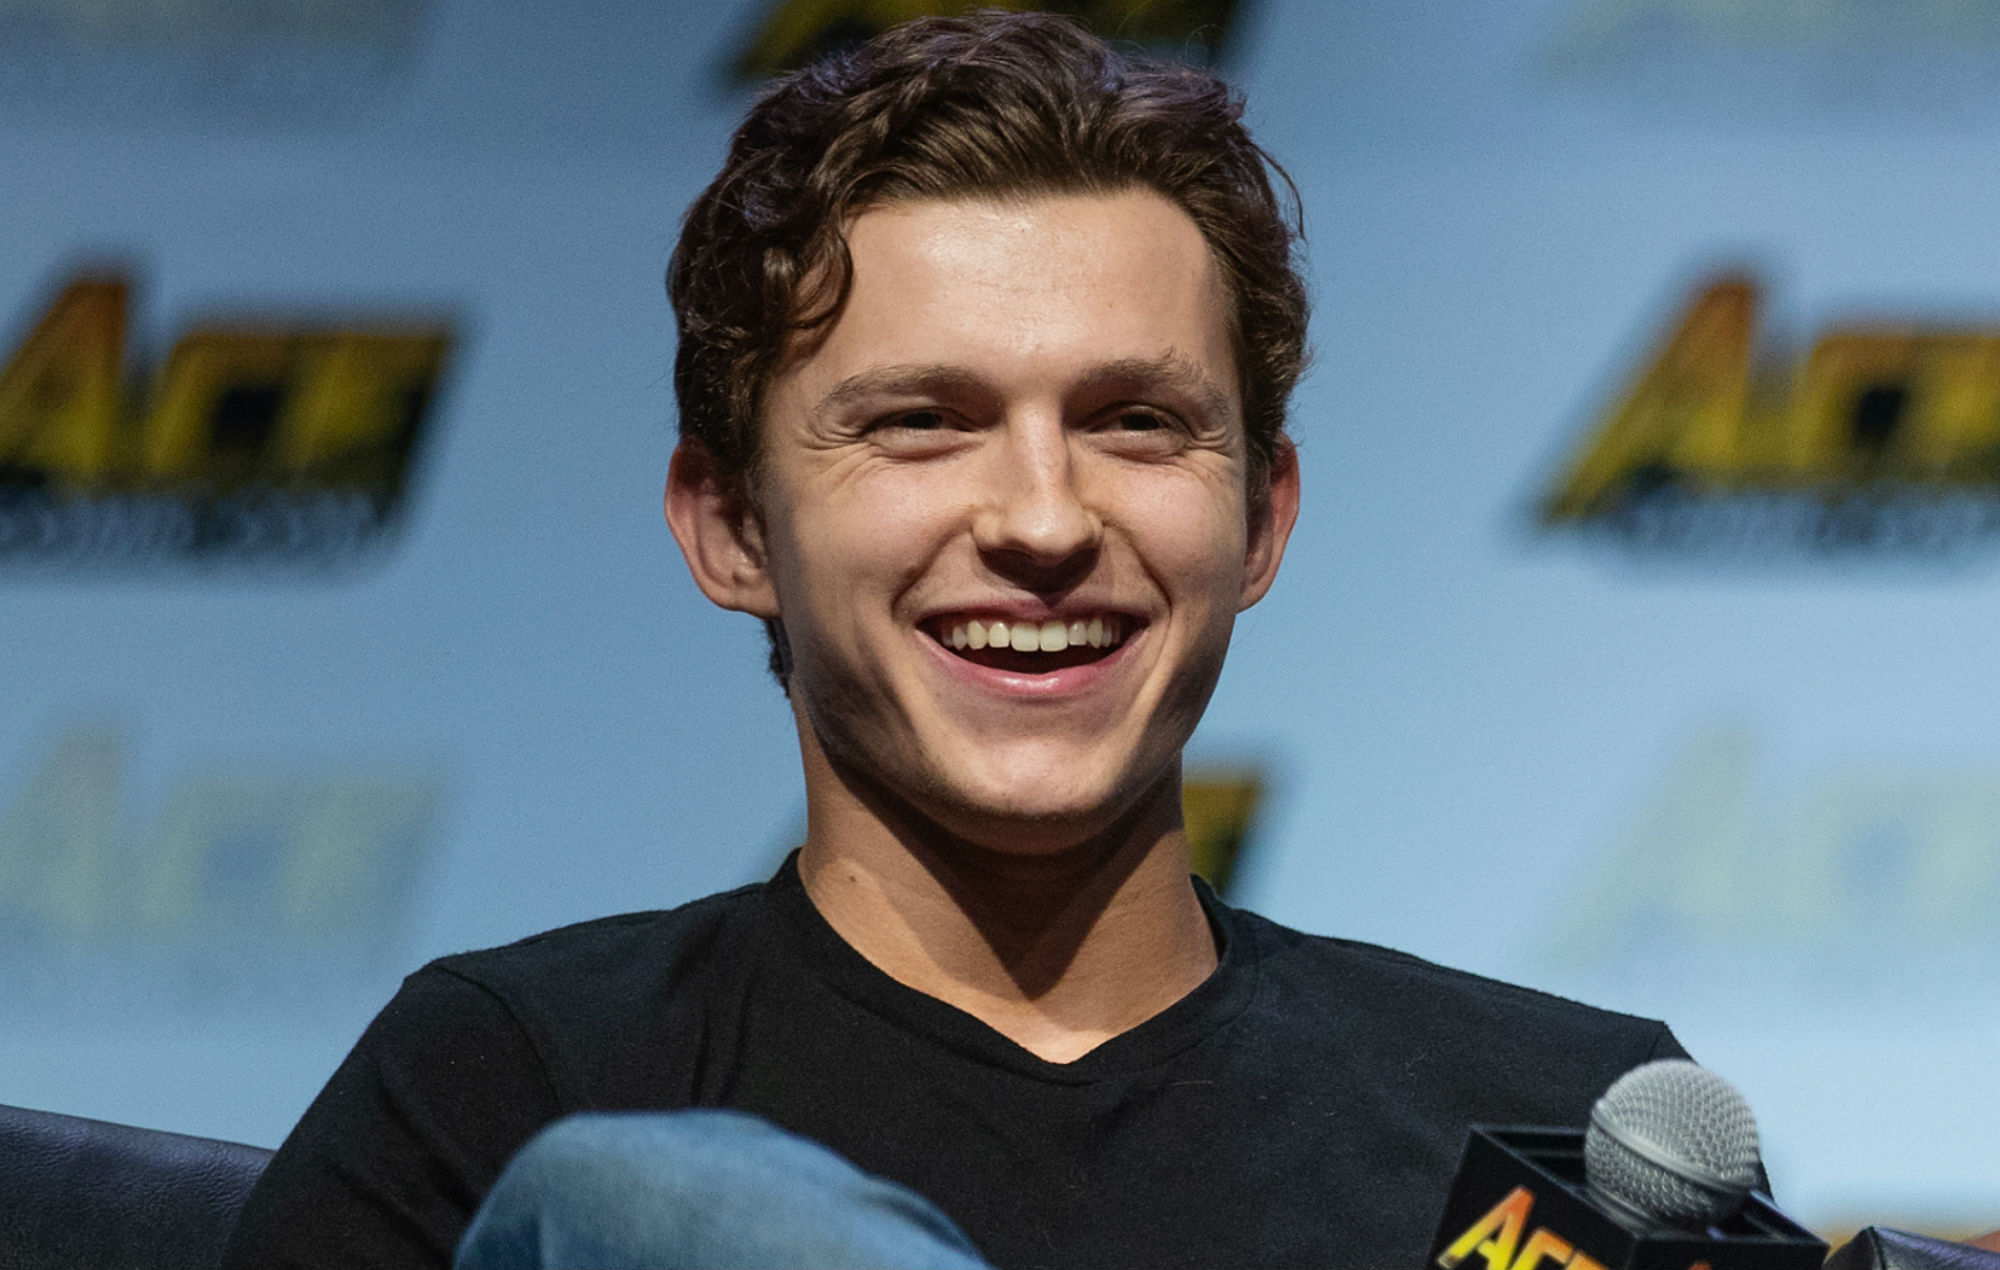 Tom Holland Reveals Scrapped Cameo For 'Spider-Man: Into The Spider-Verse'